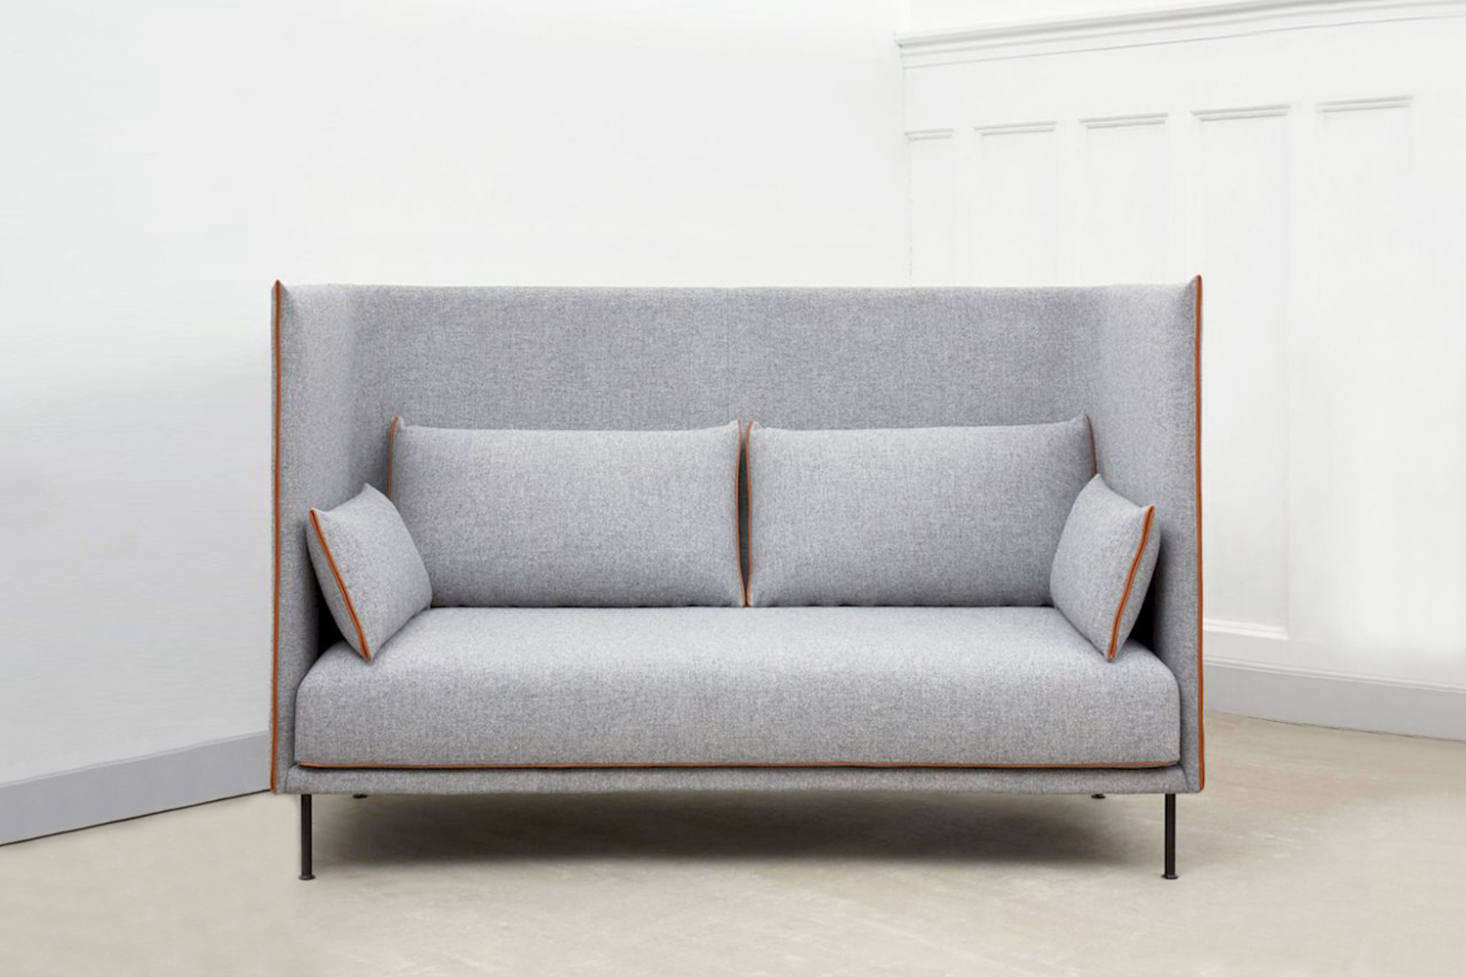 hay sofa kvadrat ashley furniture chocolate 10 easy pieces high back sofas remodelista the silhouette backed is made with a fiberglass shell and oak frame